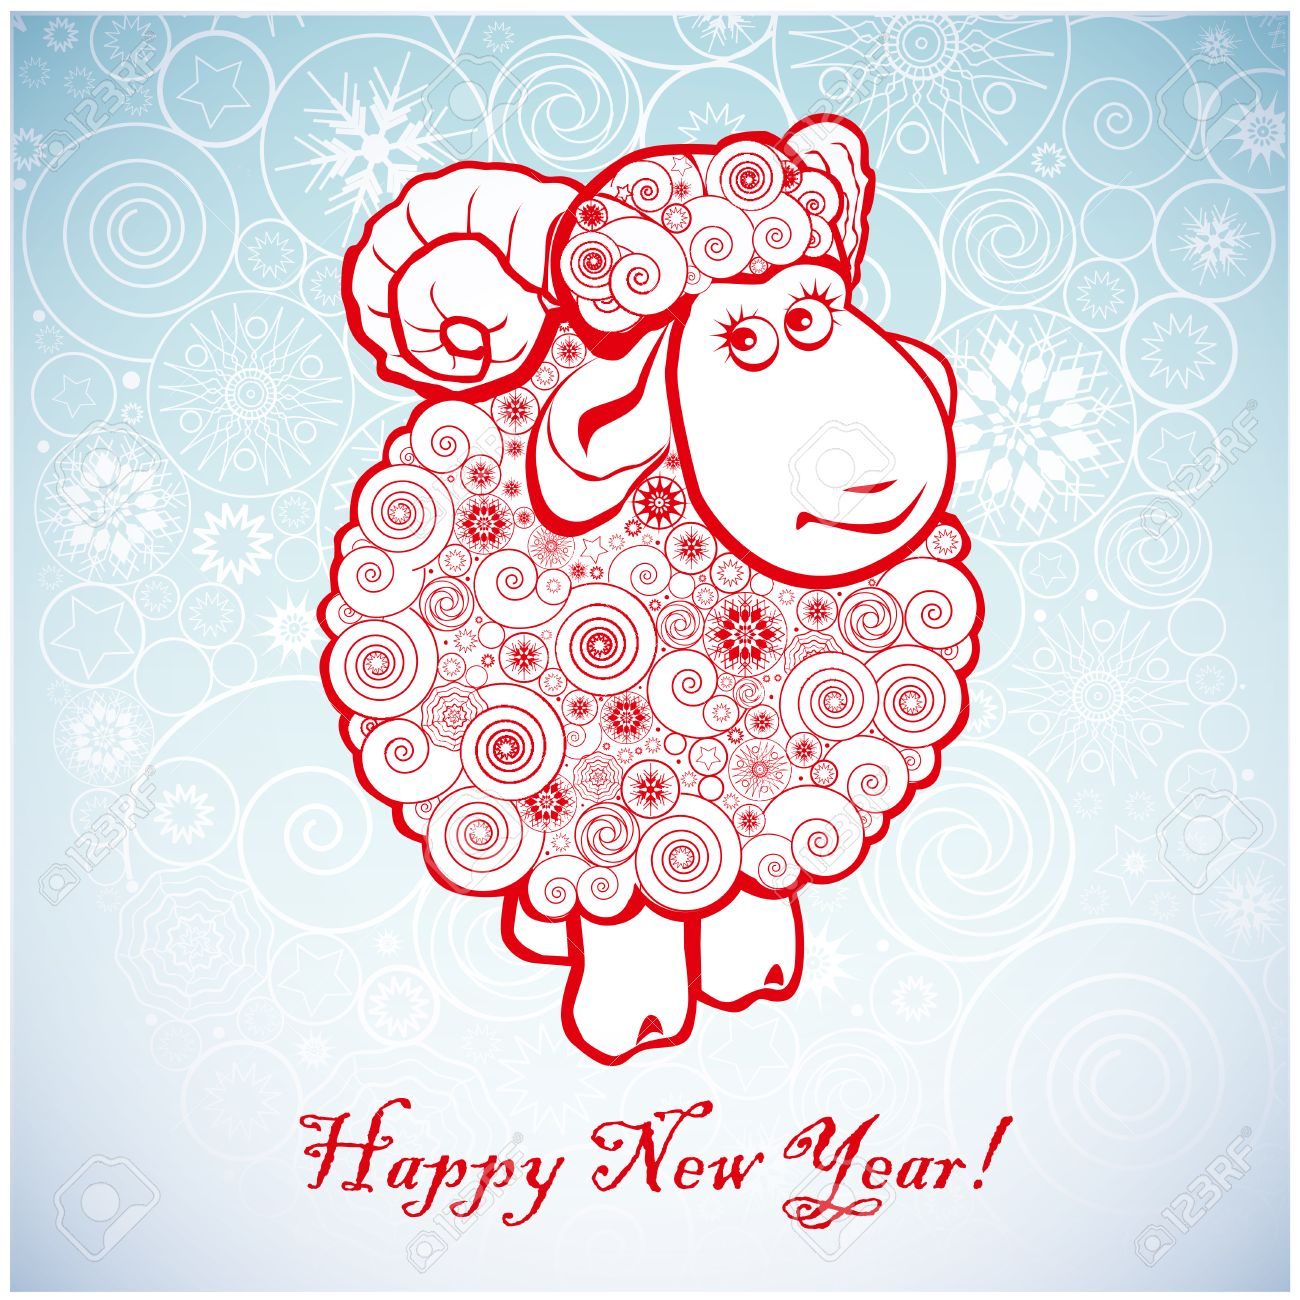 funny sheep on white background of snowflakes merry christmas and happy new year greeting